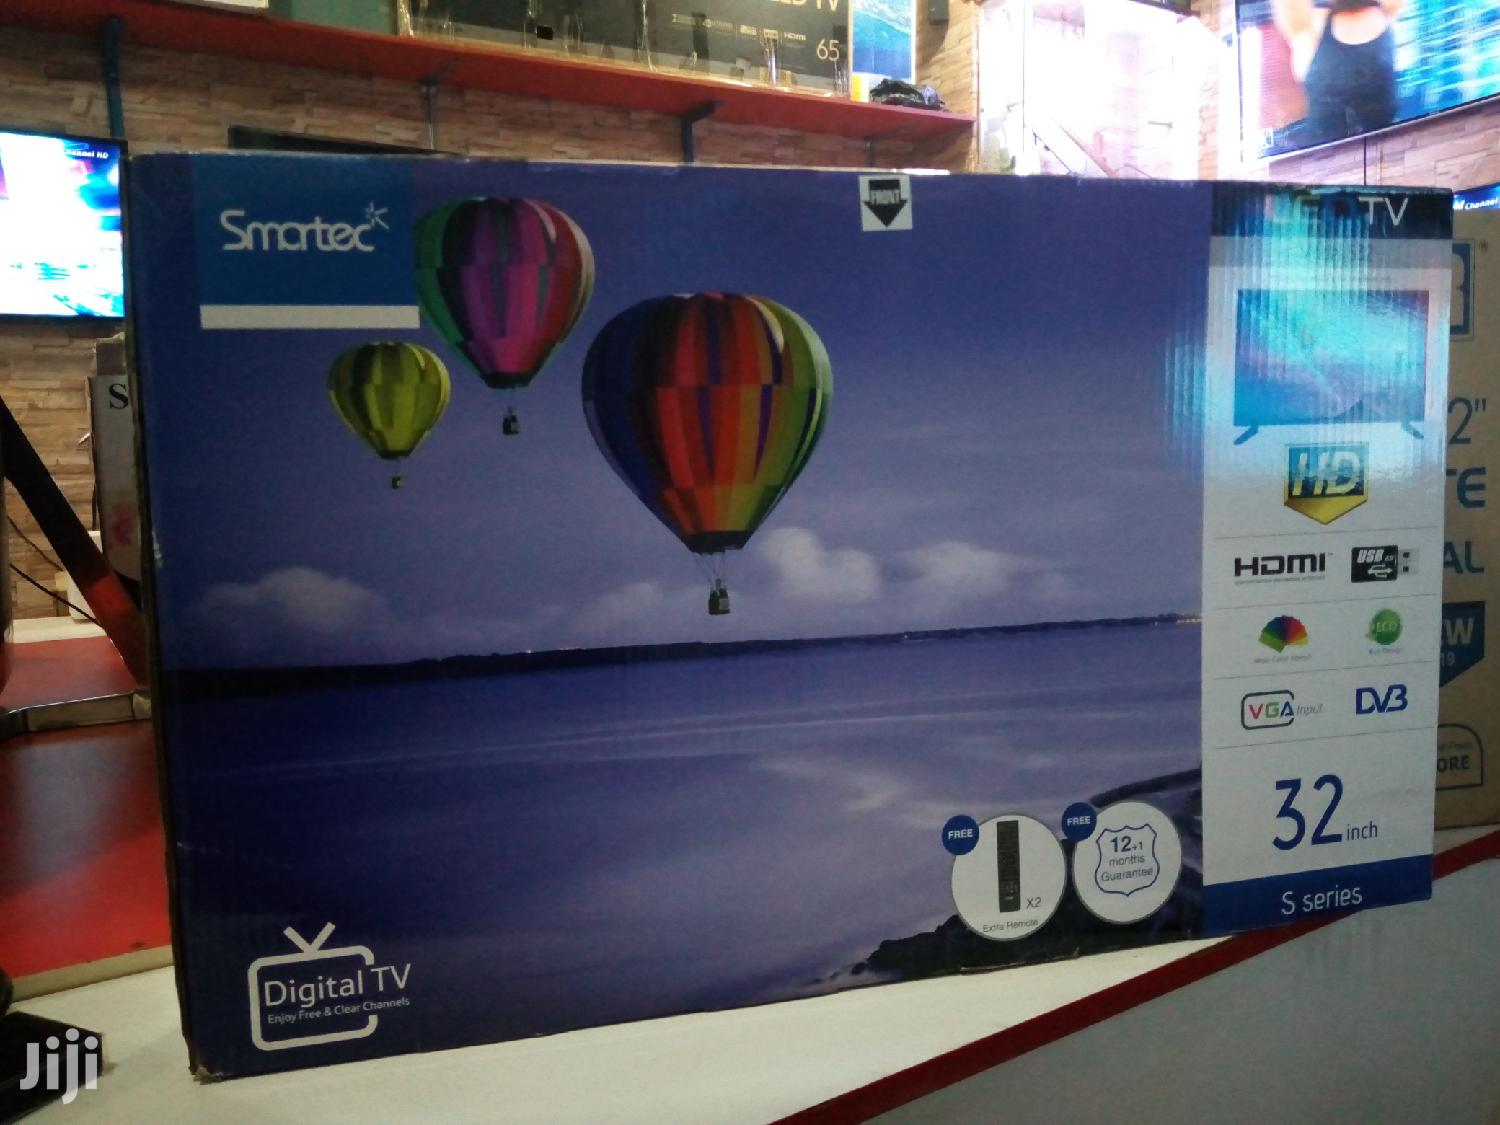 Smartec Digital Flat Screen Tv 32 Inches